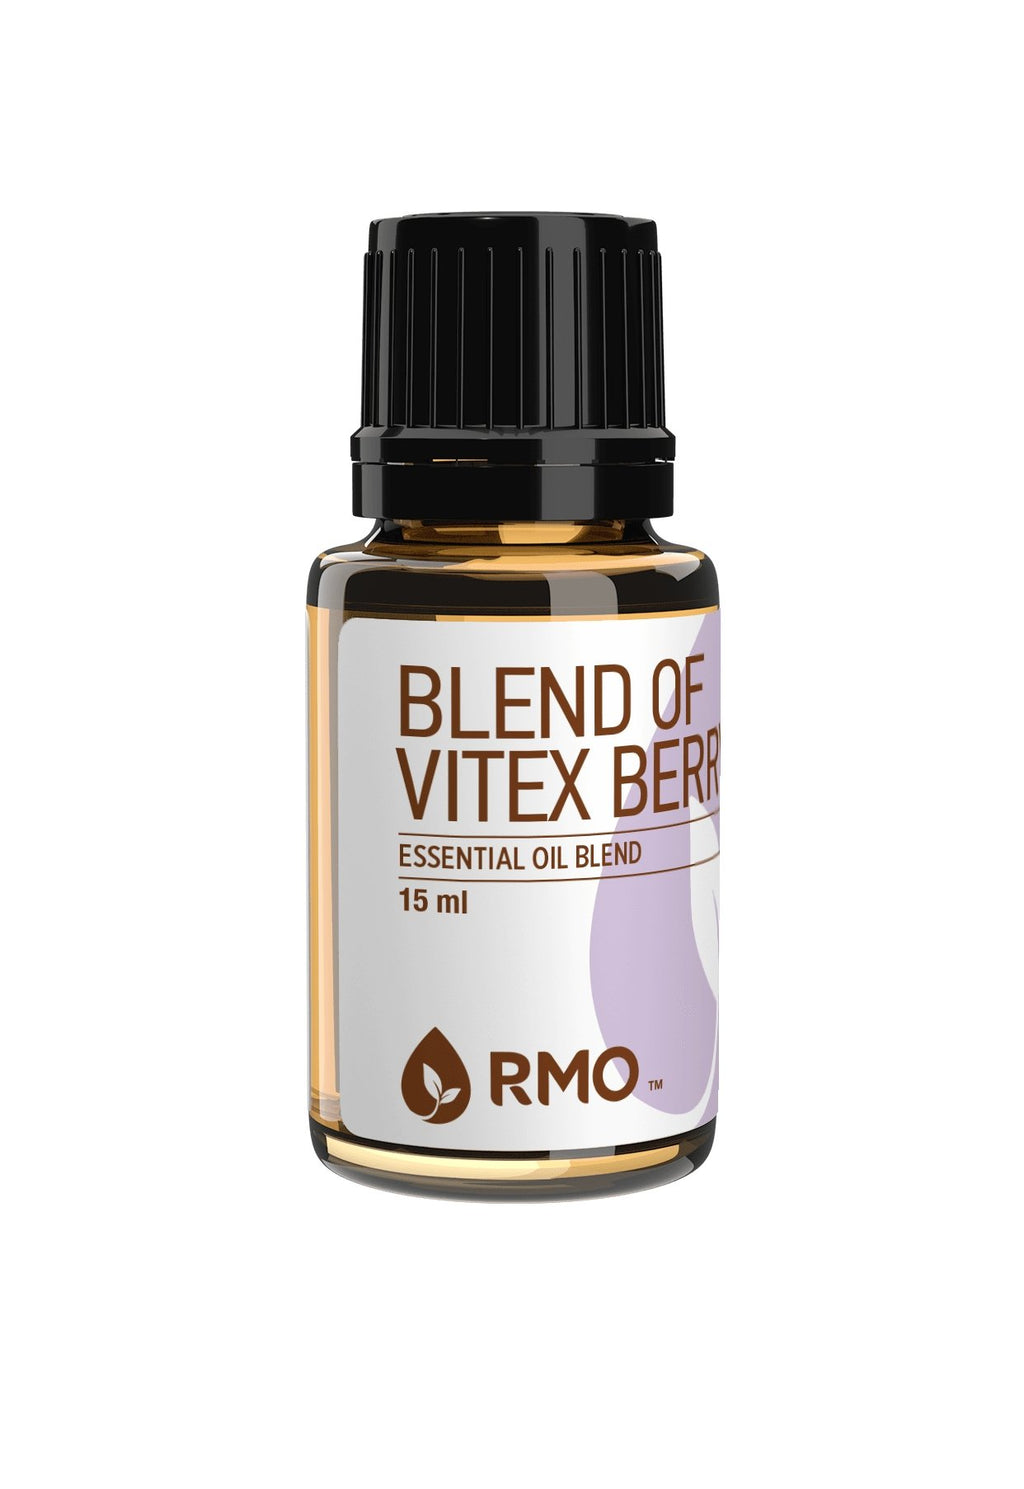 Blend of V tex Berry Essential Oil 15ml | Plant Therapy Malaysia, Plant Therapy essential oil, Plant Plant Therapy oil online